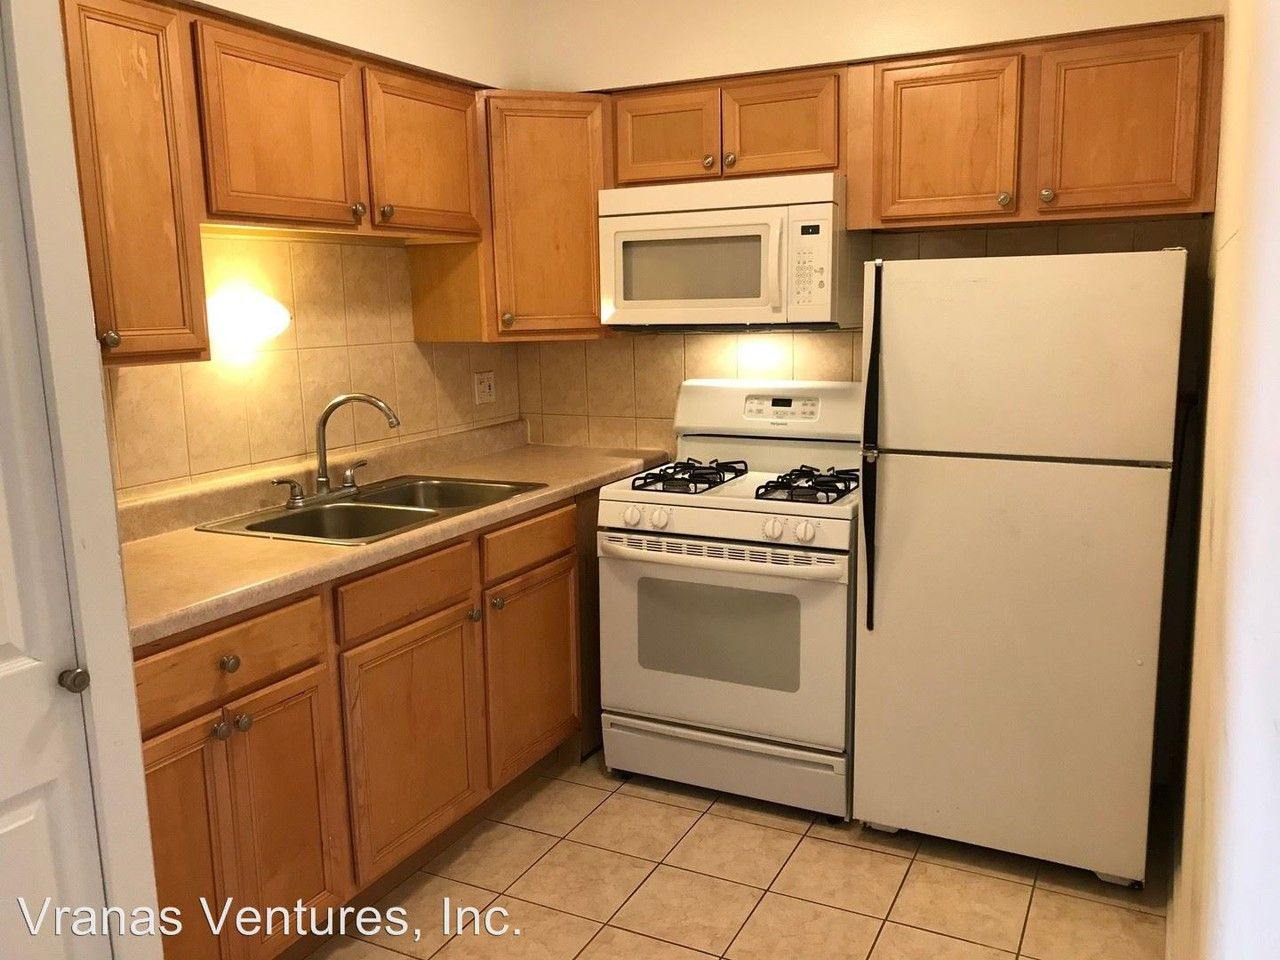 6758 N. Sheridan Rd. Apartments for Rent in Rogers Park ...